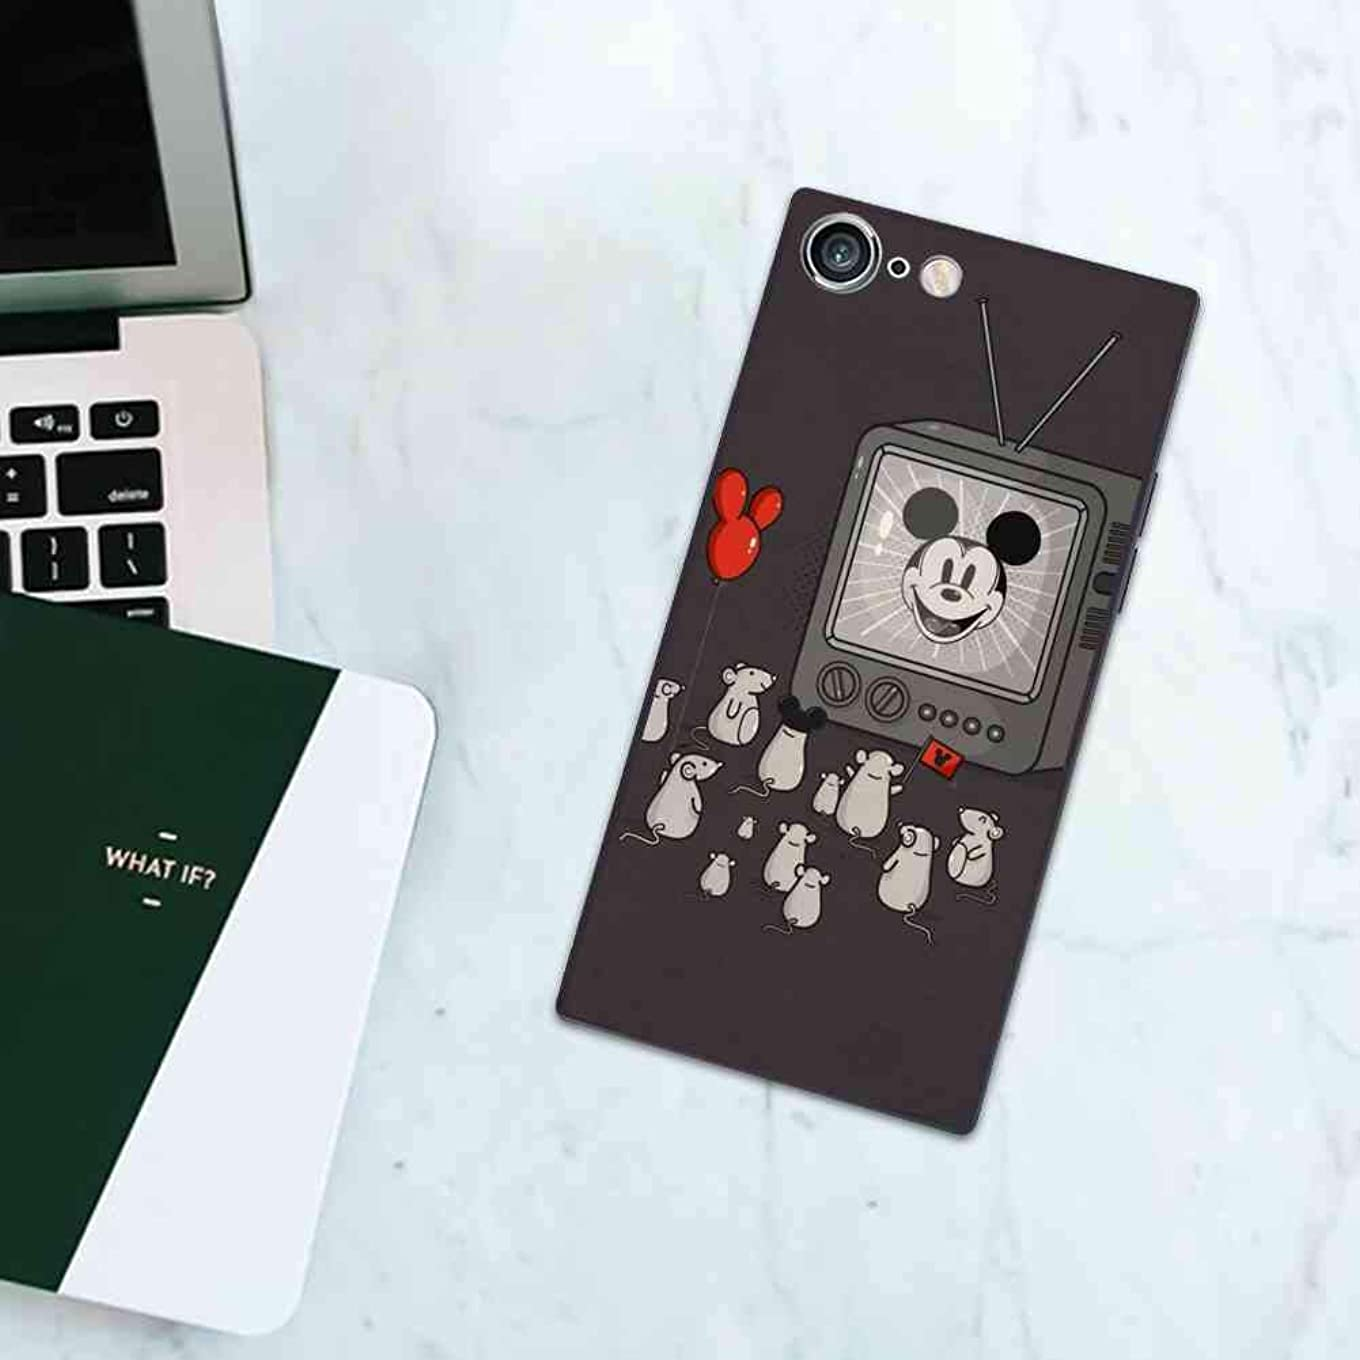 DISNEY COLLECTION Fits for Apple iPhone 6s Plus iPhone 6 Plus The mice are Watching Mickey Mouse on TV